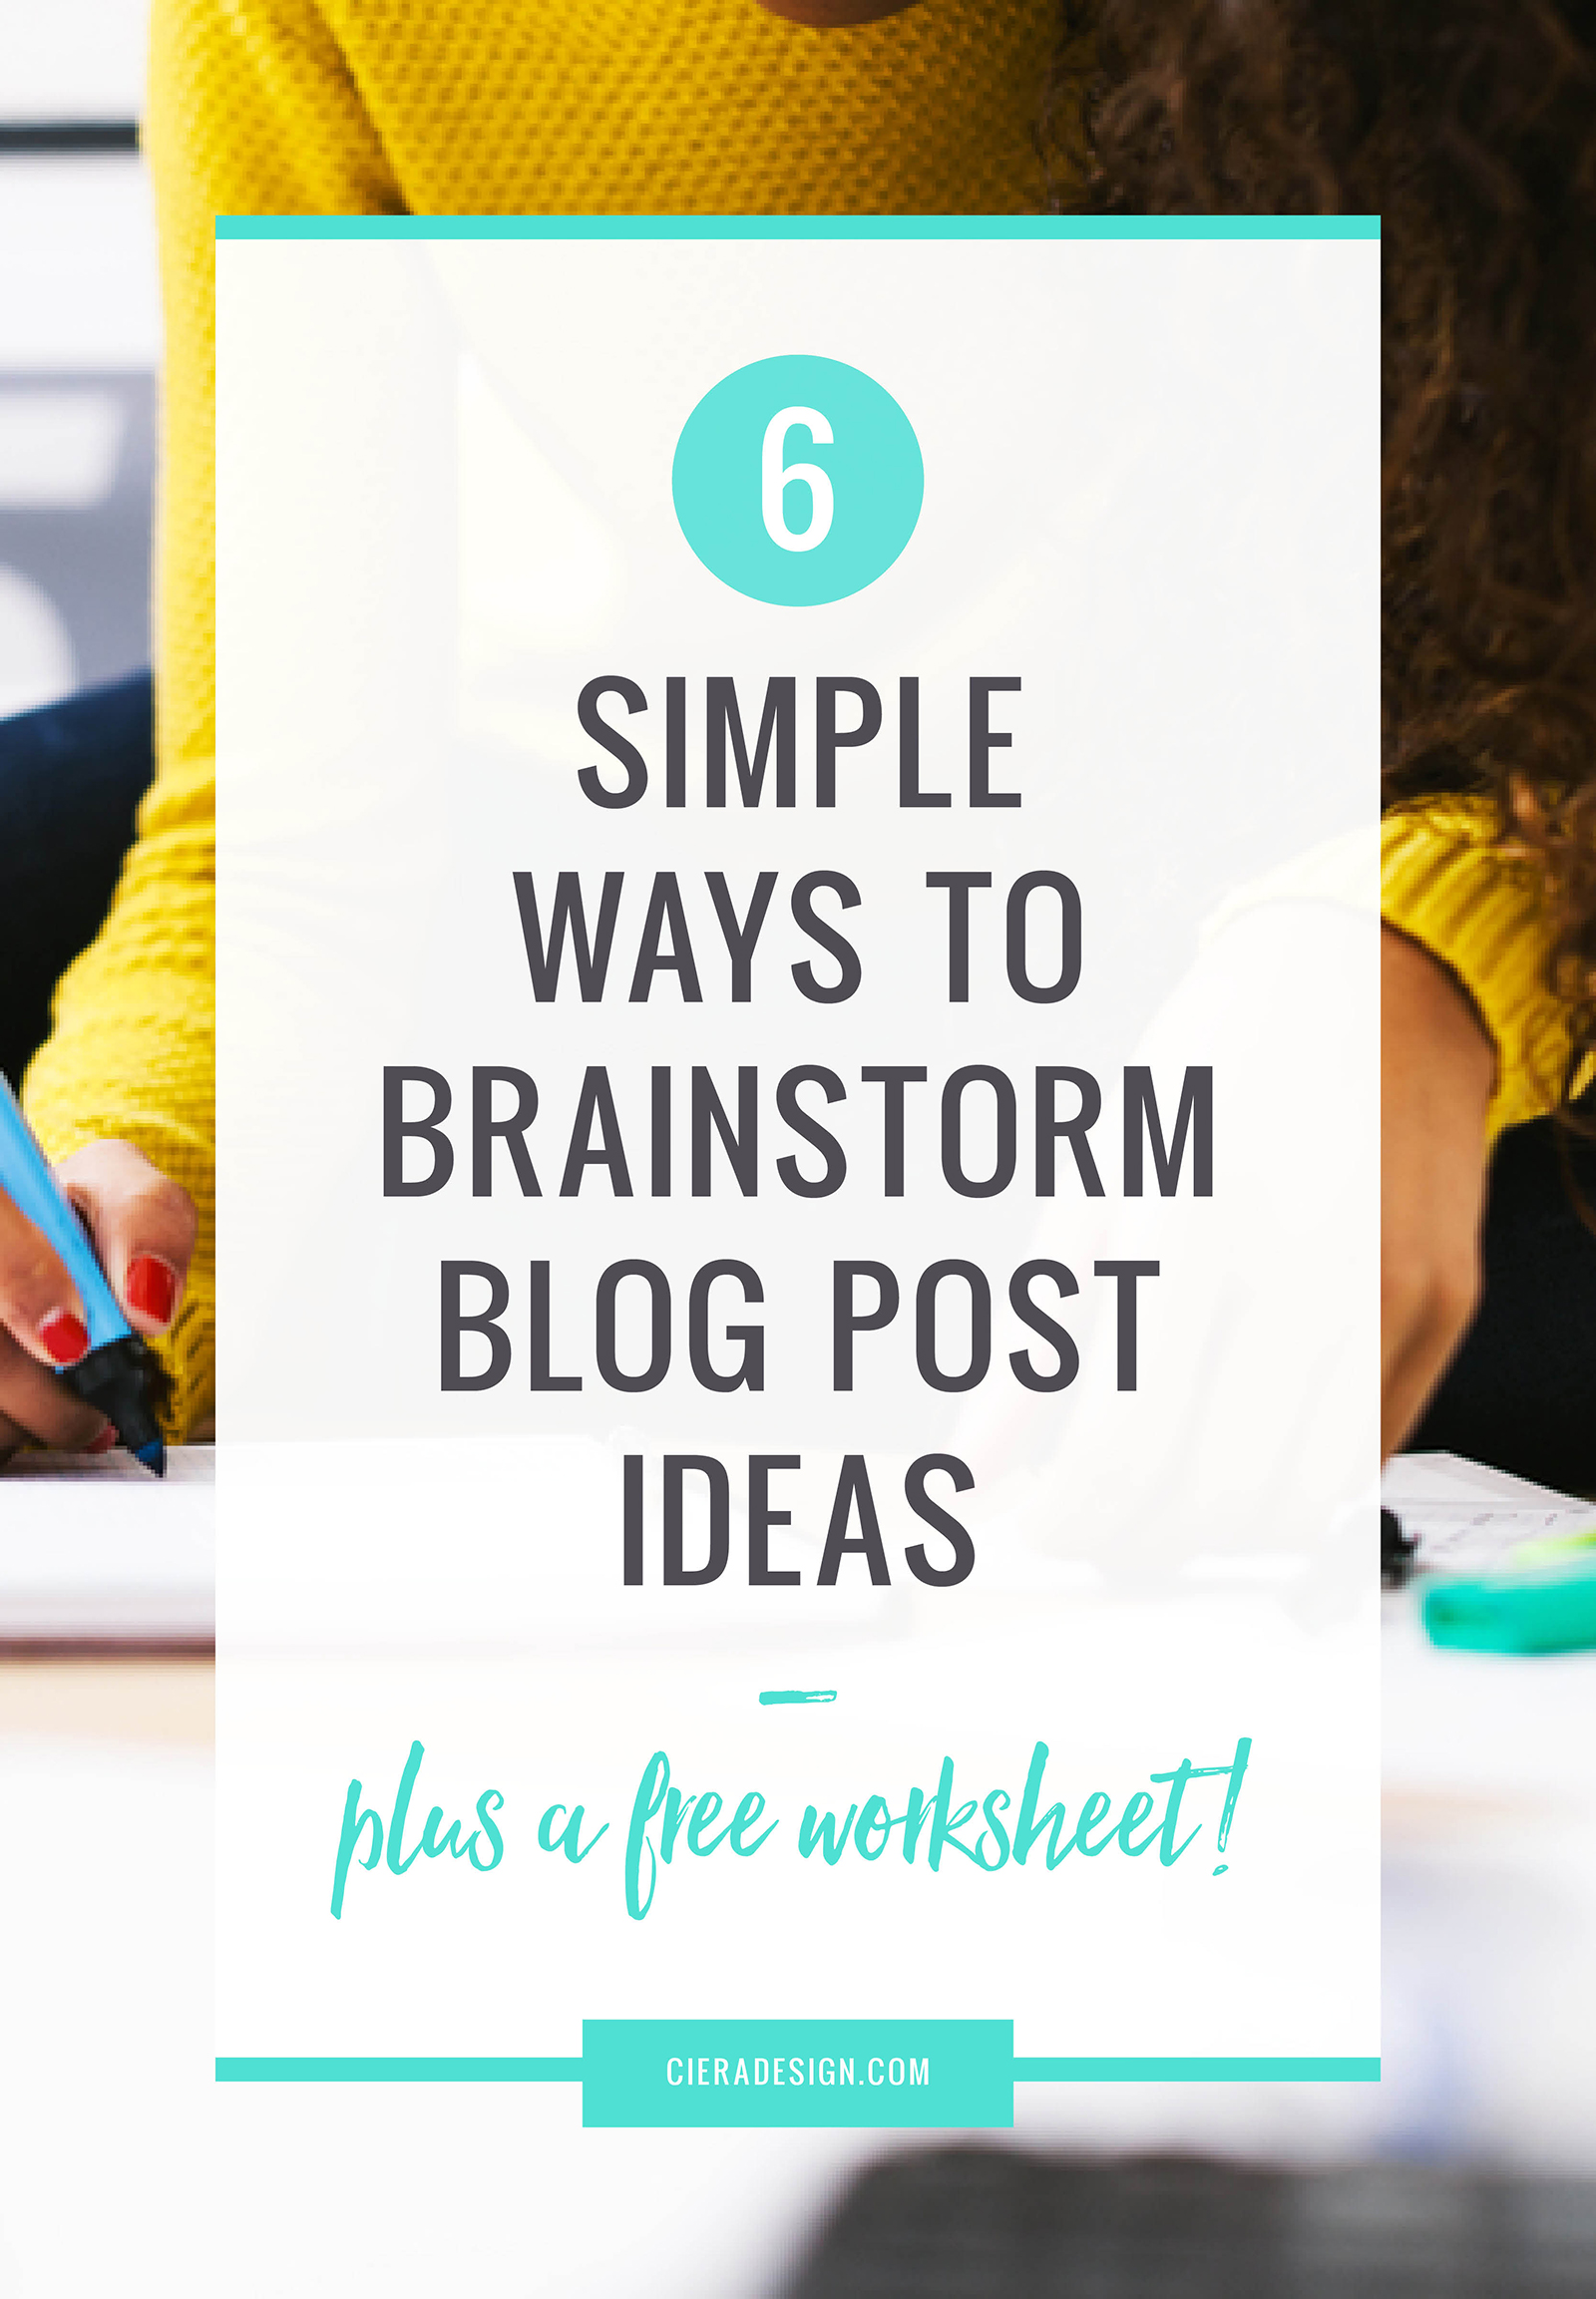 Download This Free Worksheet to Help You Brainstorm Blog Post Ideas